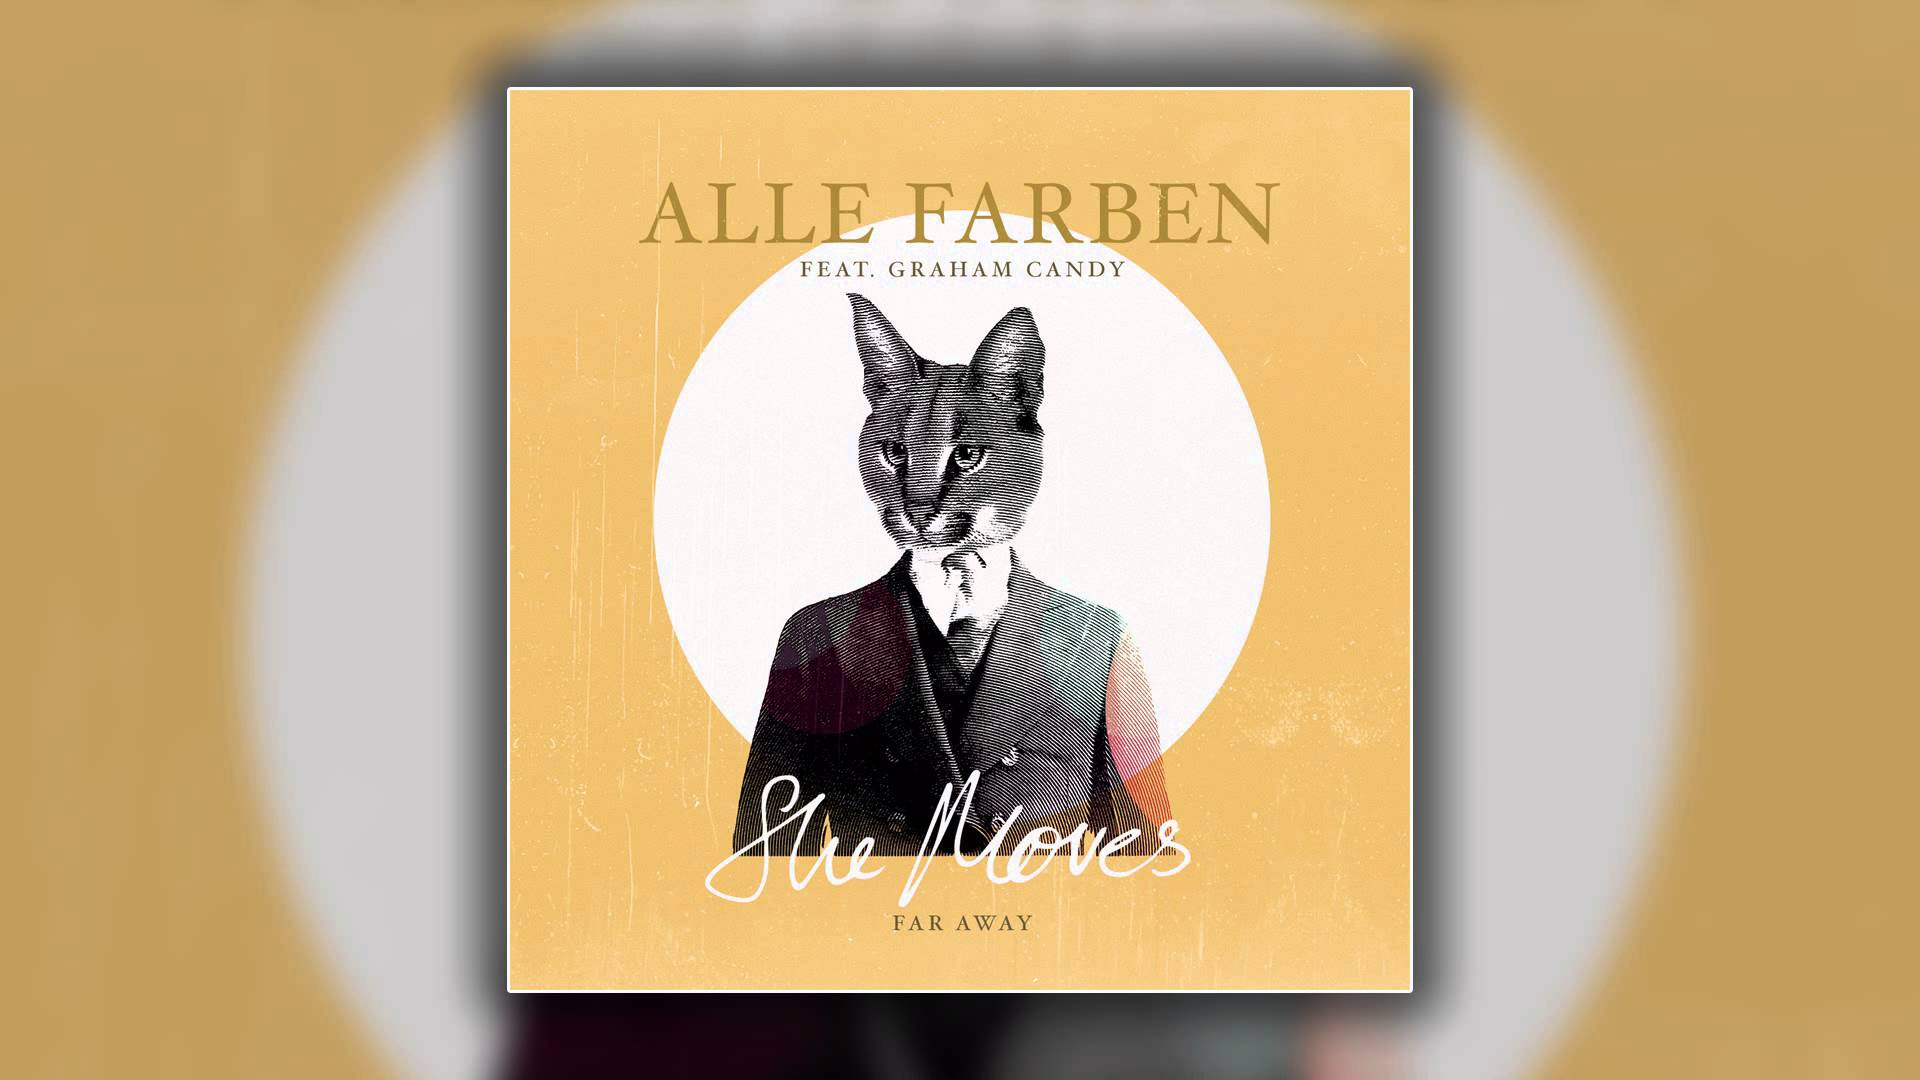 Alle Farben feat. Graham Candy – She Moves (Far Away) [Album Version] [Cover Art]